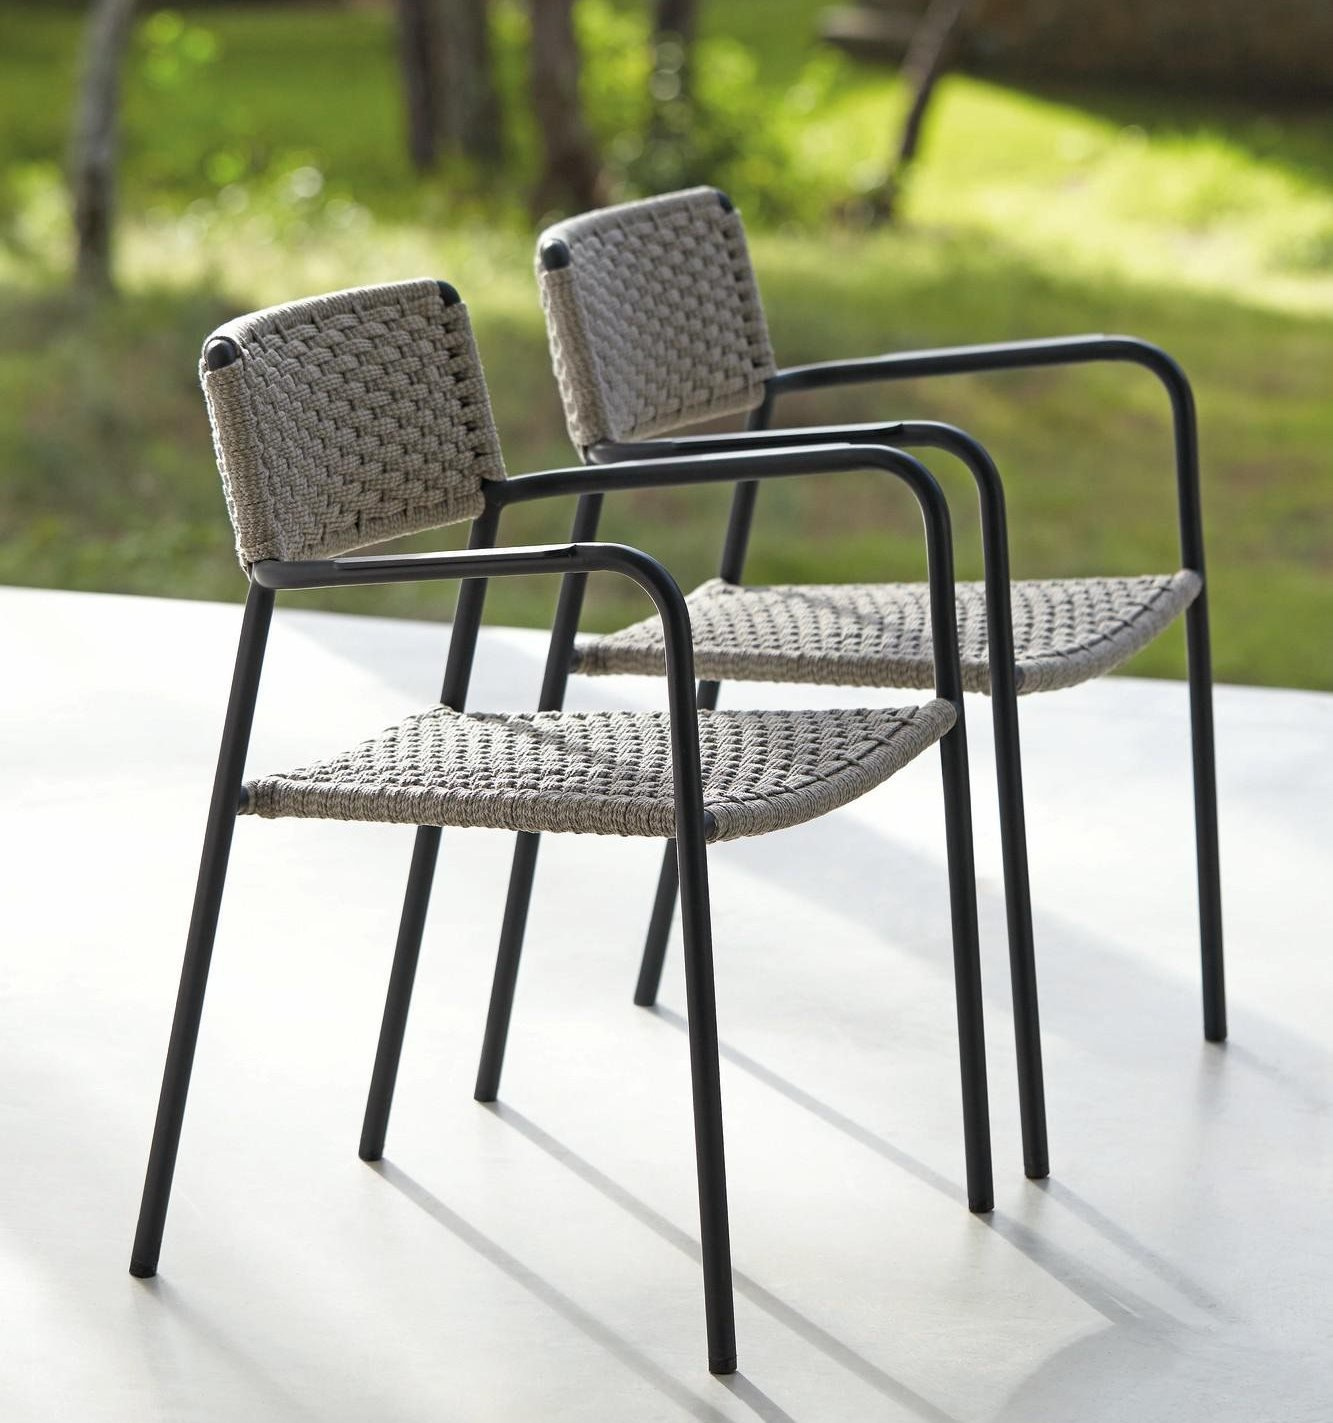 Echo Dining Chair from Manutti, designed by Stephane De Winter